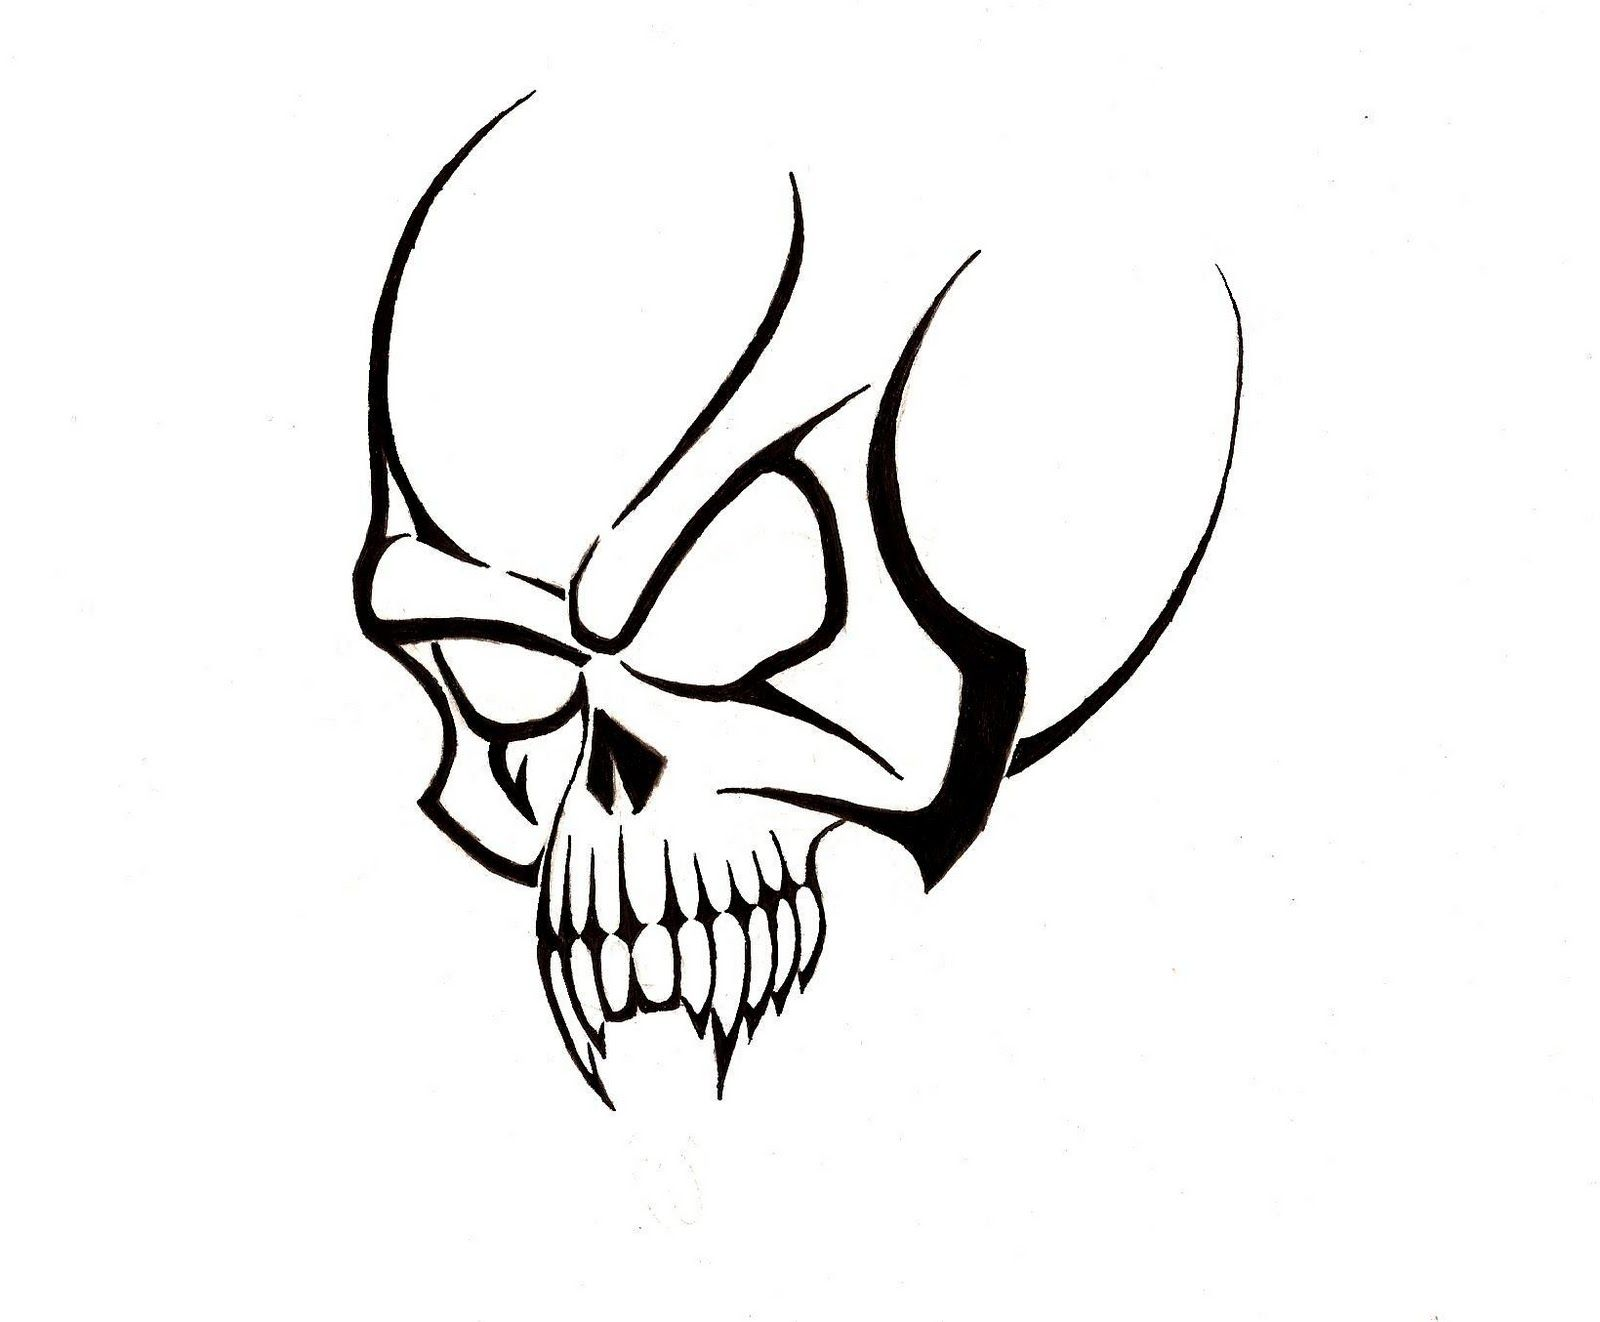 Picture Tattoo Collection Tribal Skull Tattoo Designs The Next Most Tribal Skull Skull Tattoo Design Simple Skull